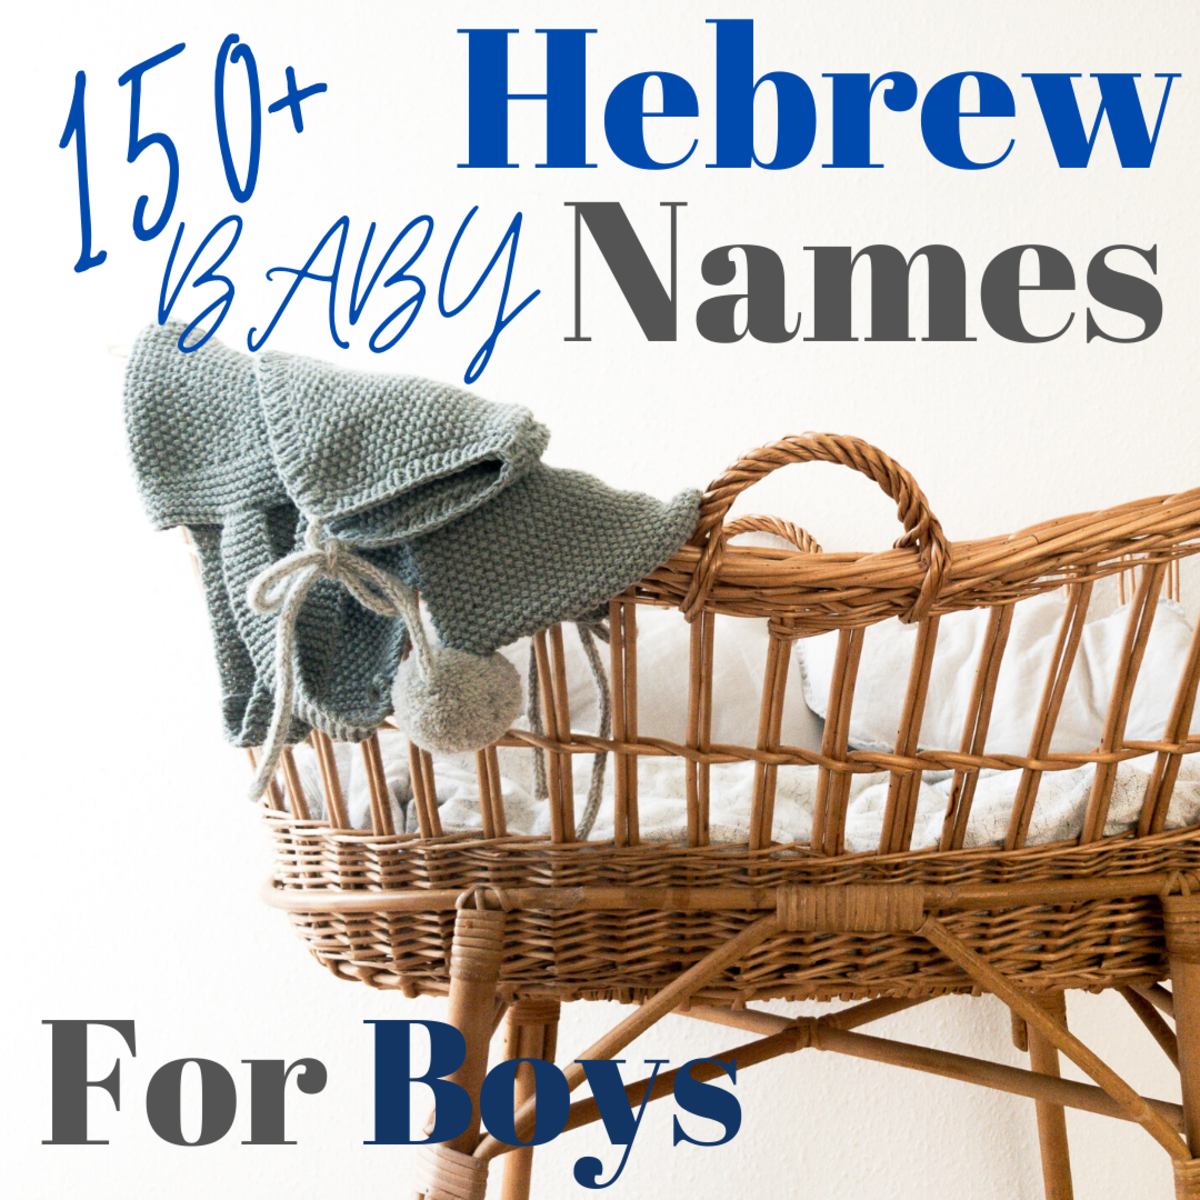 150+ Popular Hebrew Names for Baby Boys